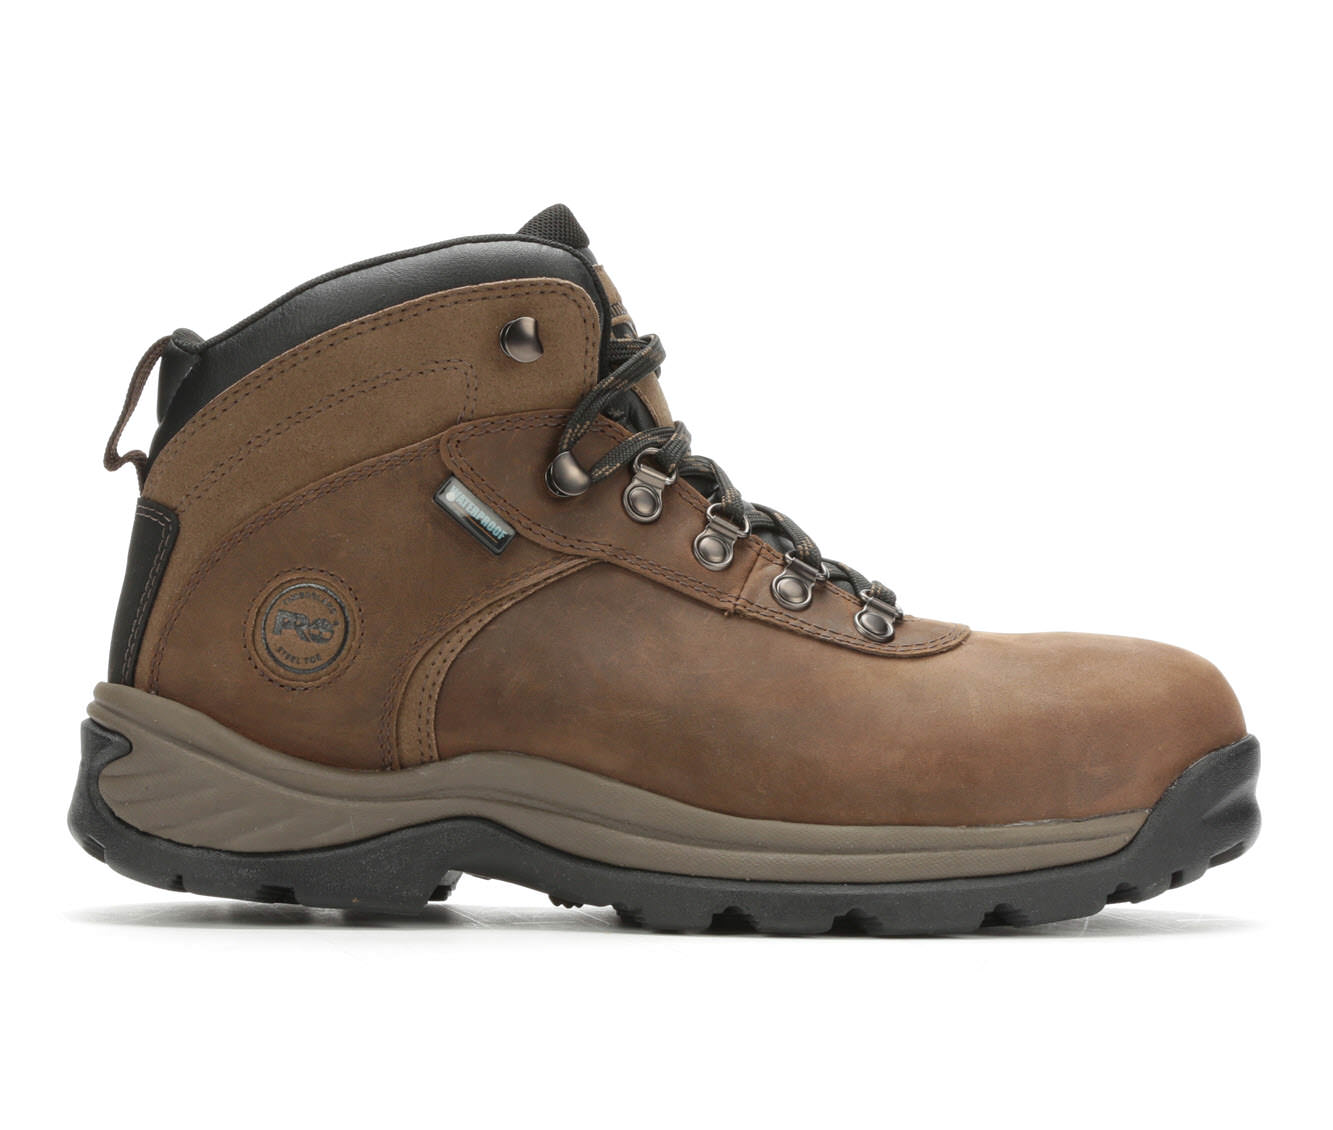 Timberland Pro Flume A1Q8V Steel Toe Waterproof Men's Boots (Brown Leather)